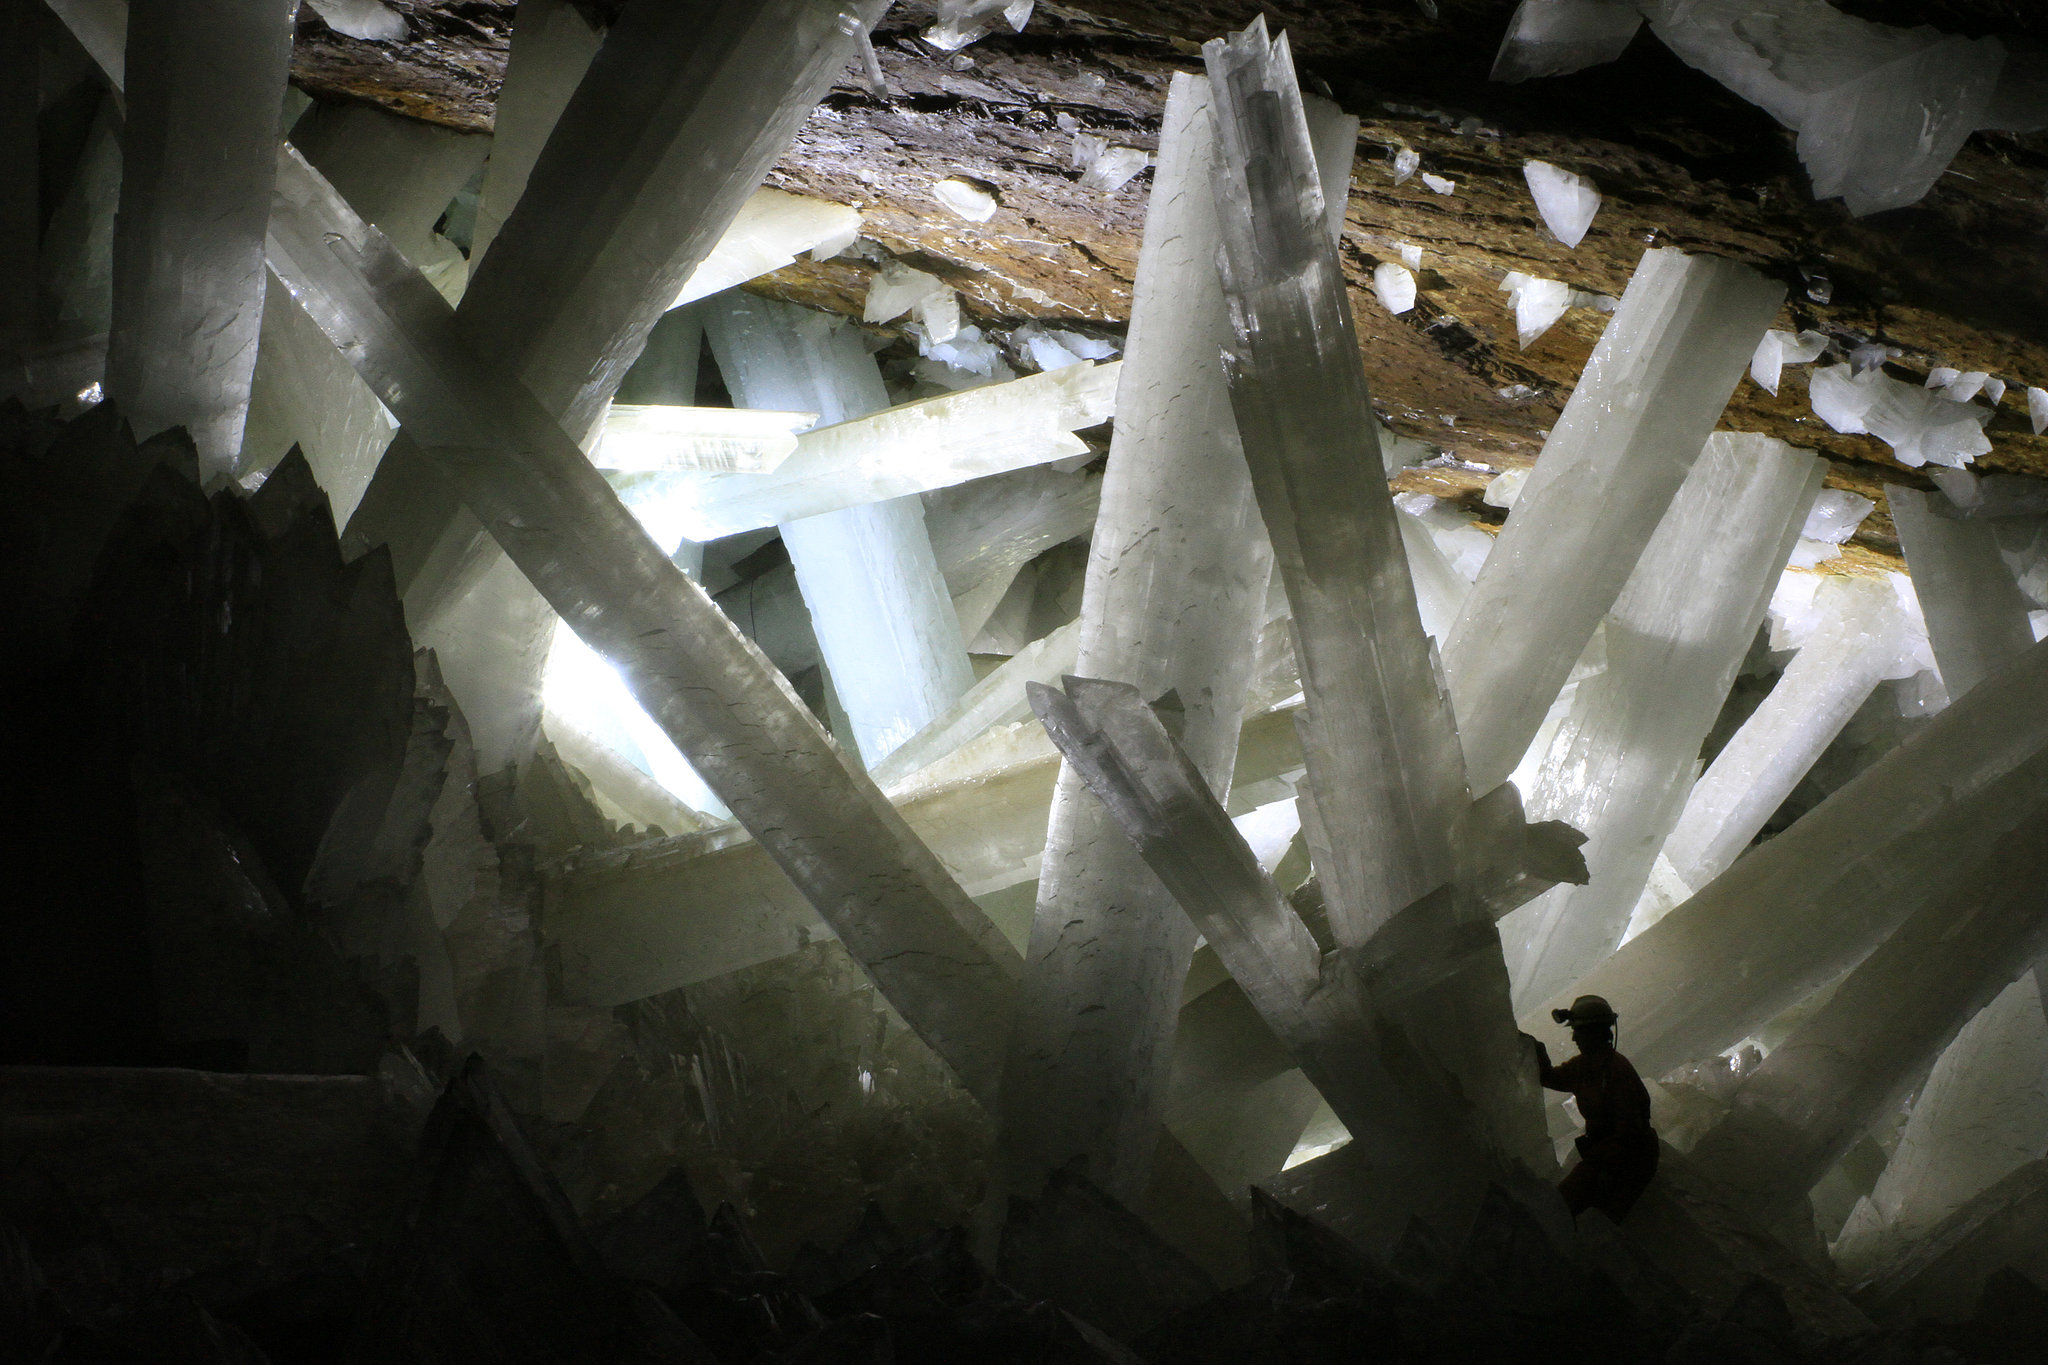 Cave of the Crystals, Mexico